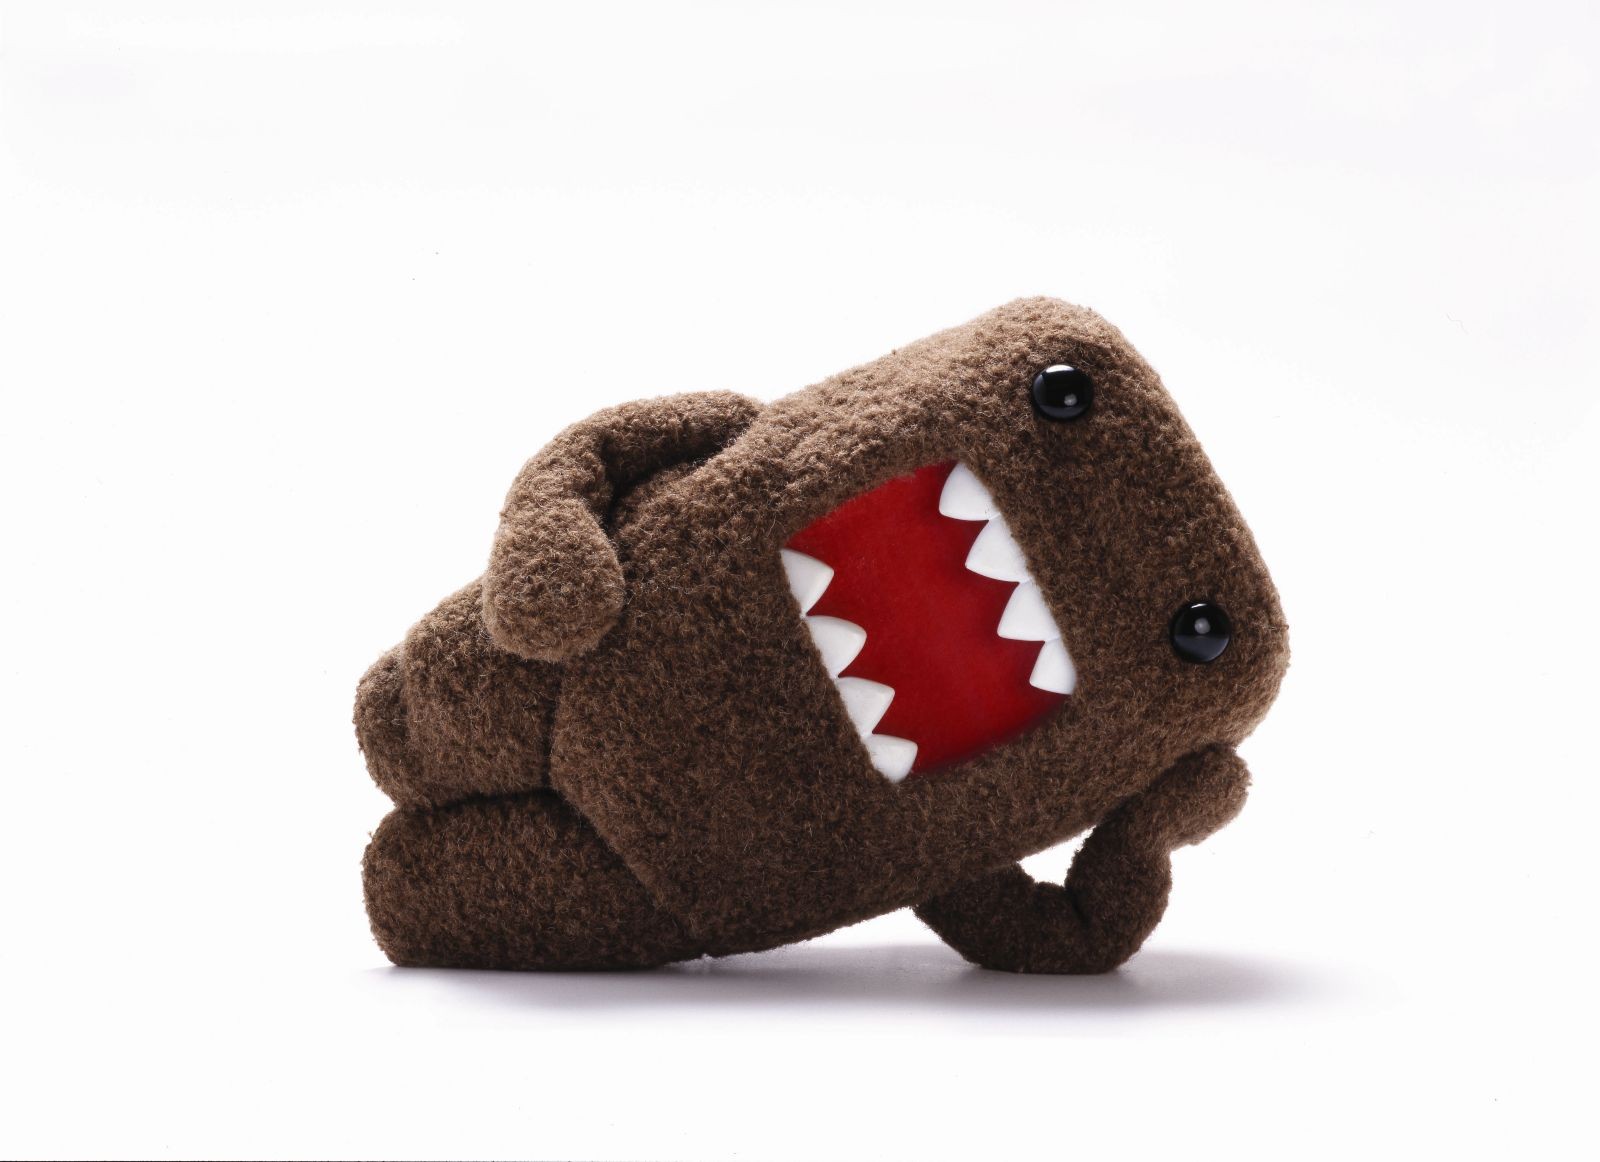 Domo wallpaper Domo hd wallpaper background desktop 1600x1162